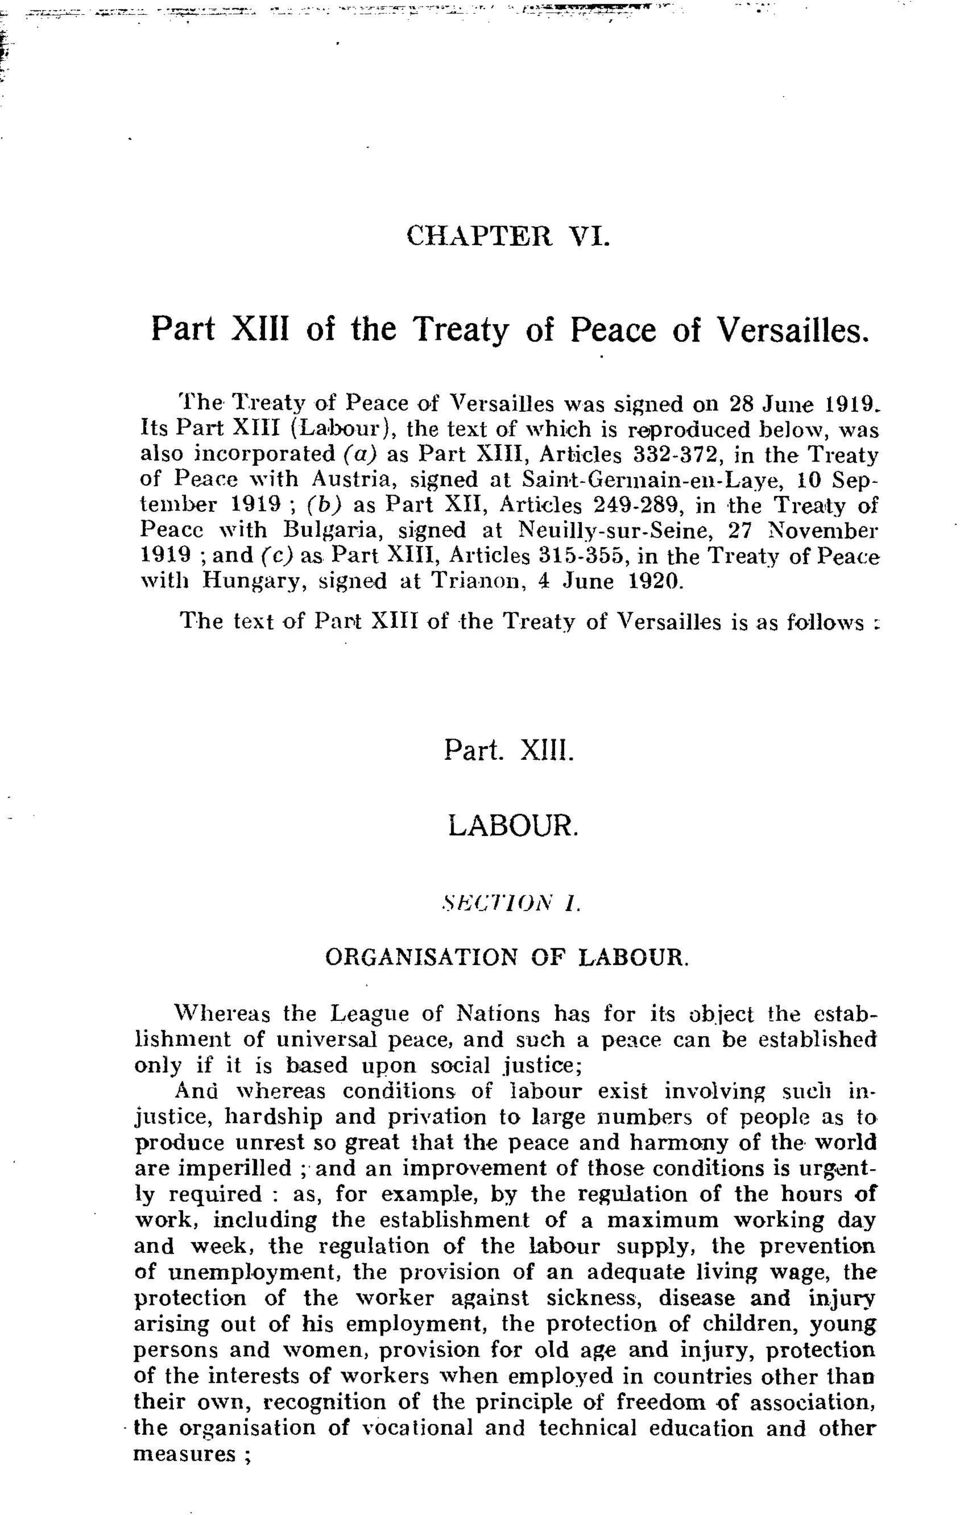 Septeniber 1919 ; (b) as Part XII, Articles 249-289, in the Treaty of Peace with Bulgaria, signed at Neuilly-sur-Seine, 27 November 1919 ; and (c) as Part XIII, Articles 315-355, in the Treaty of